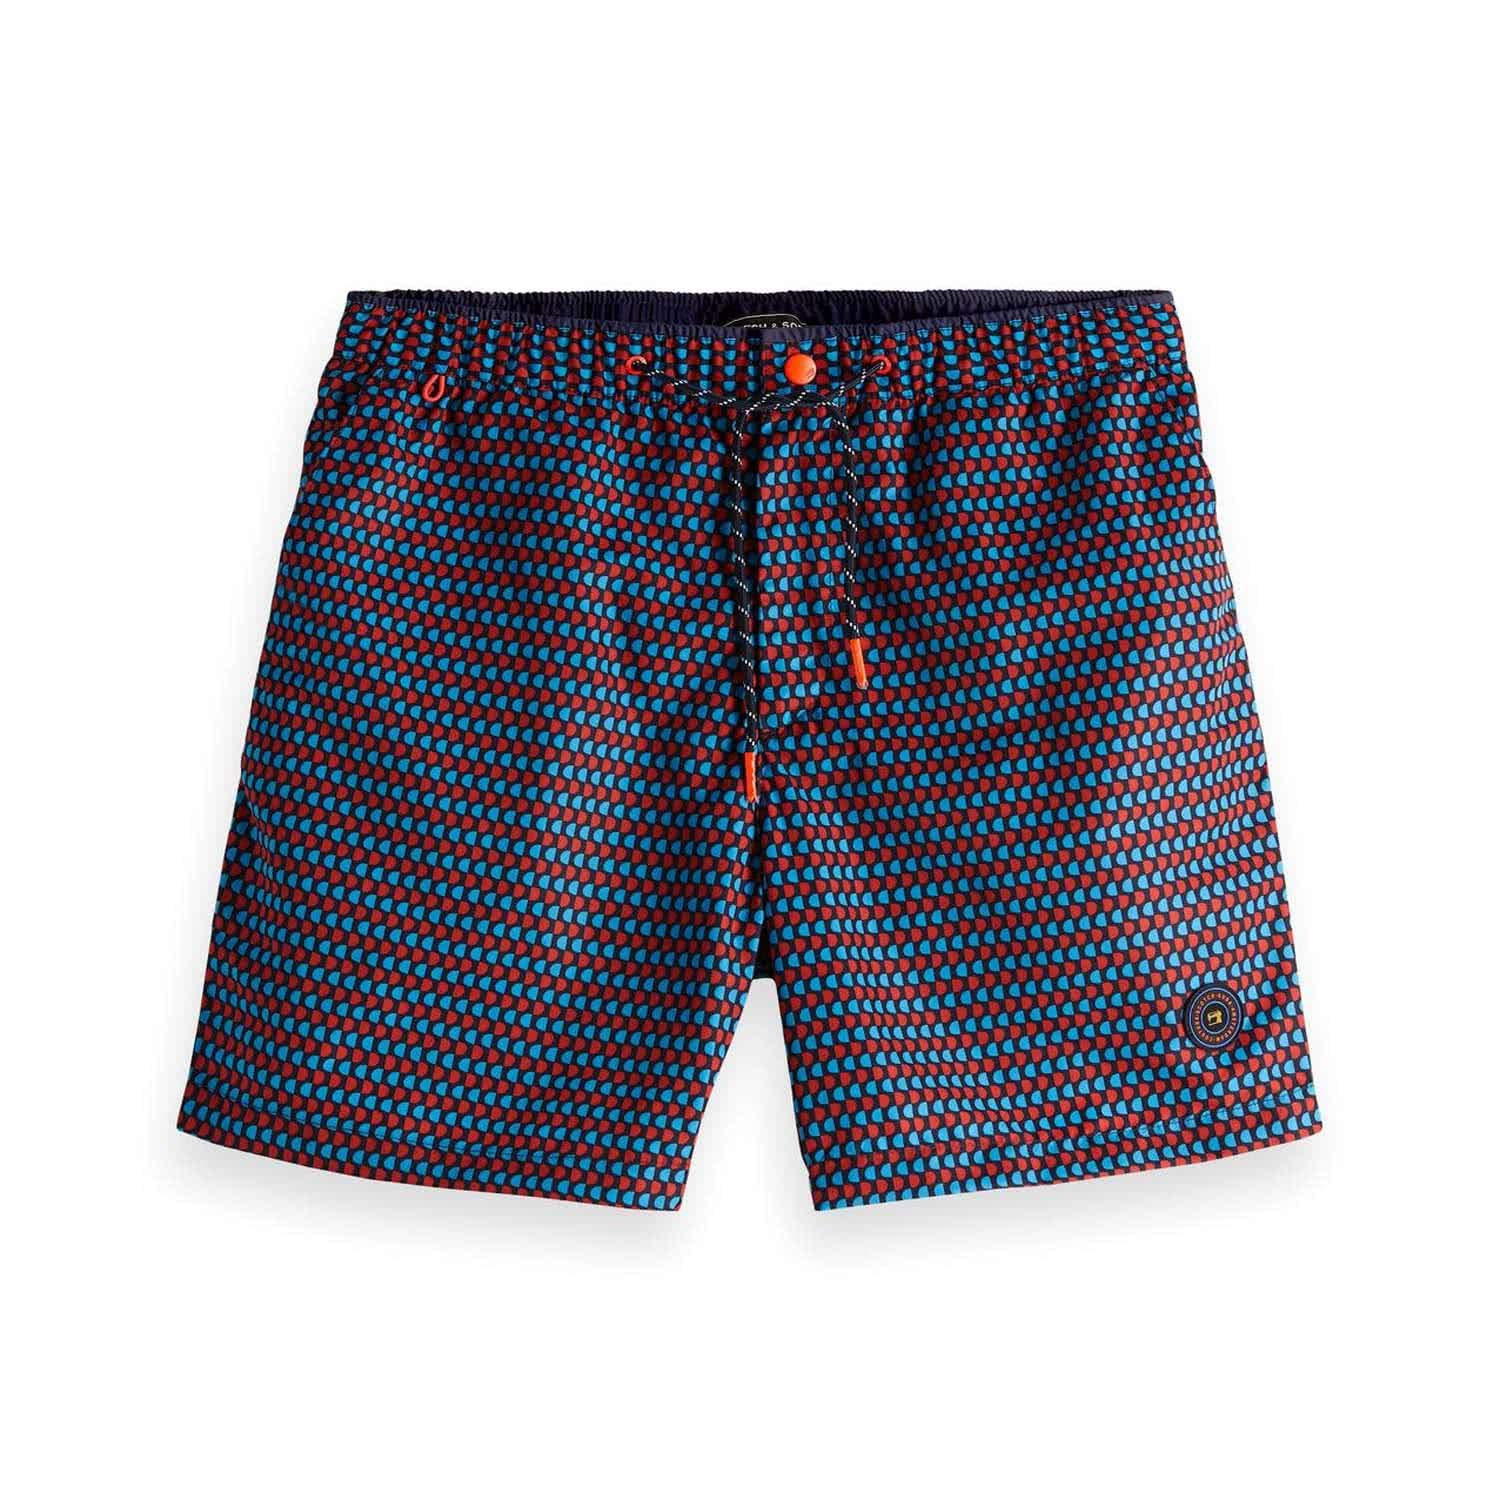 Mehrfarbig Scotch & Soda Herren Classic Colourful Swimshort Shorts